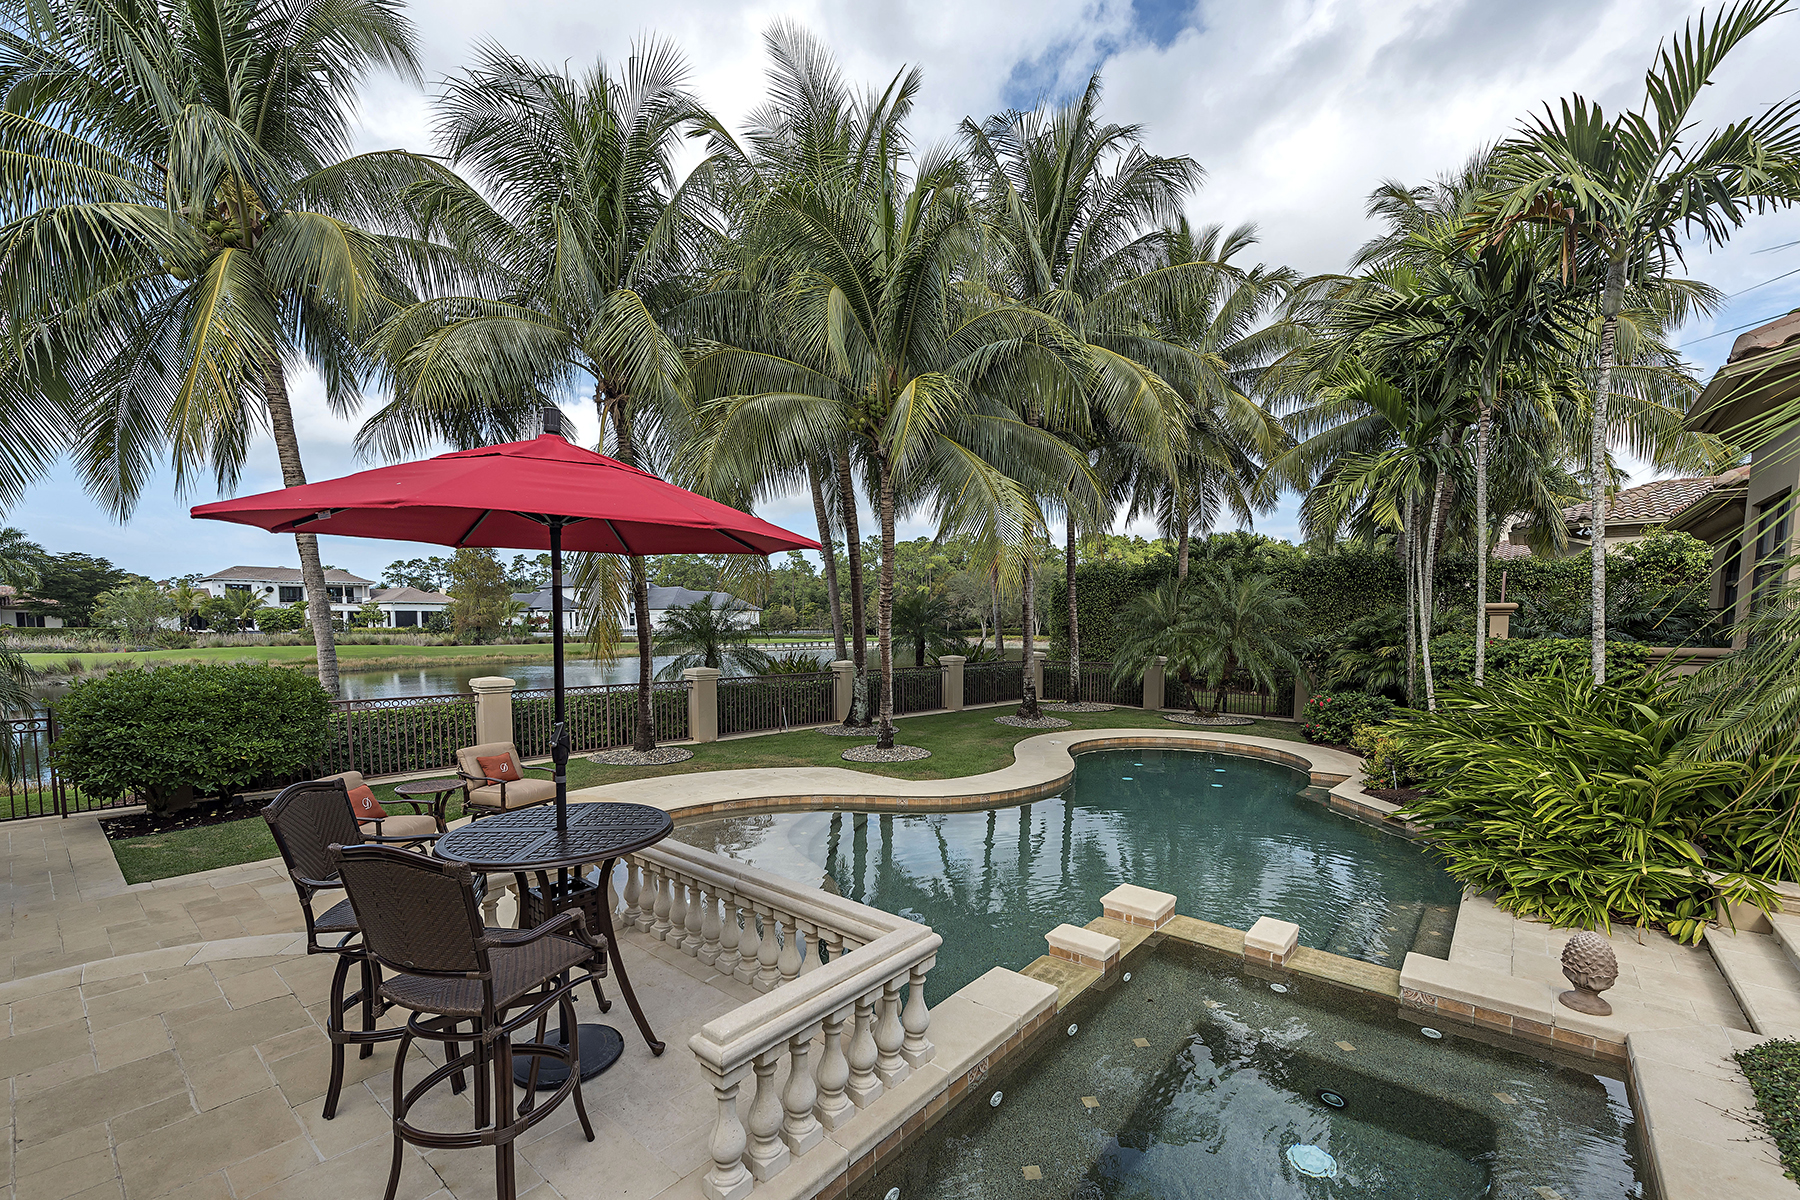 Single Family Home for Sale at 1425 Nighthawk Pt , Naples, FL 34105 1425 Nighthawk Pt Naples, Florida, 34105 United States